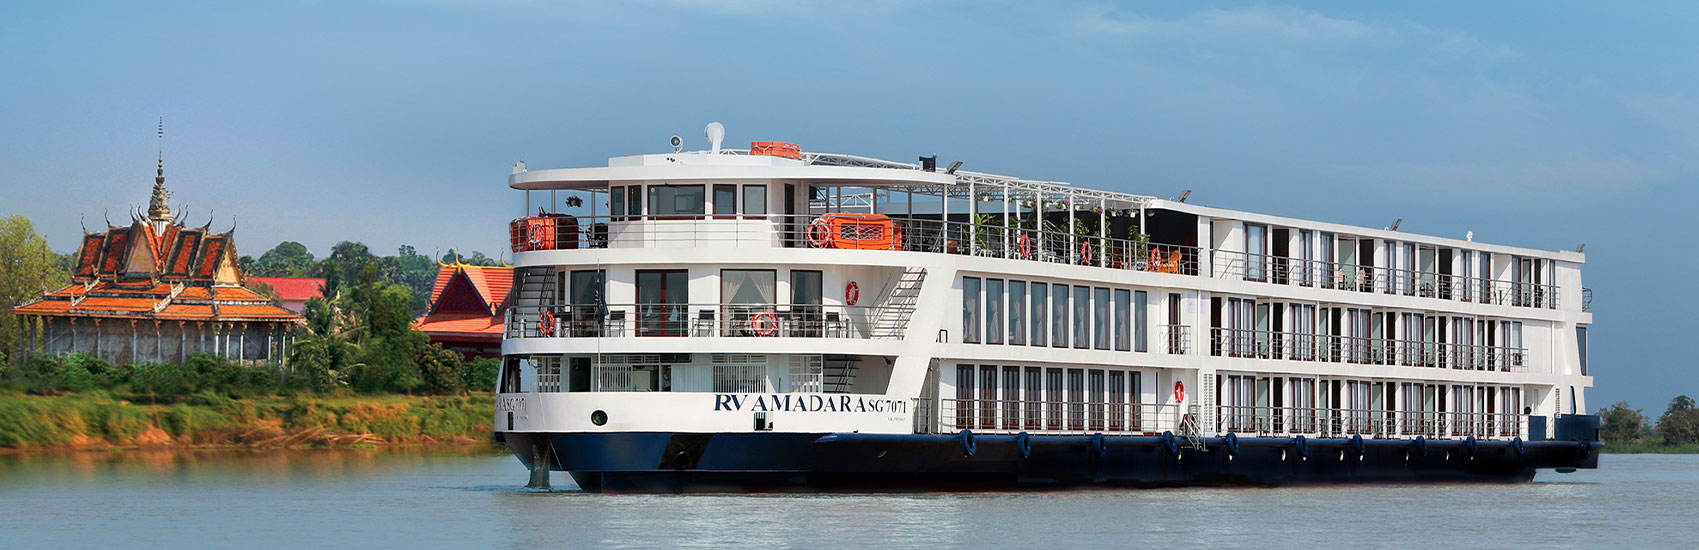 Triple The Savings with AmaWaterways 1